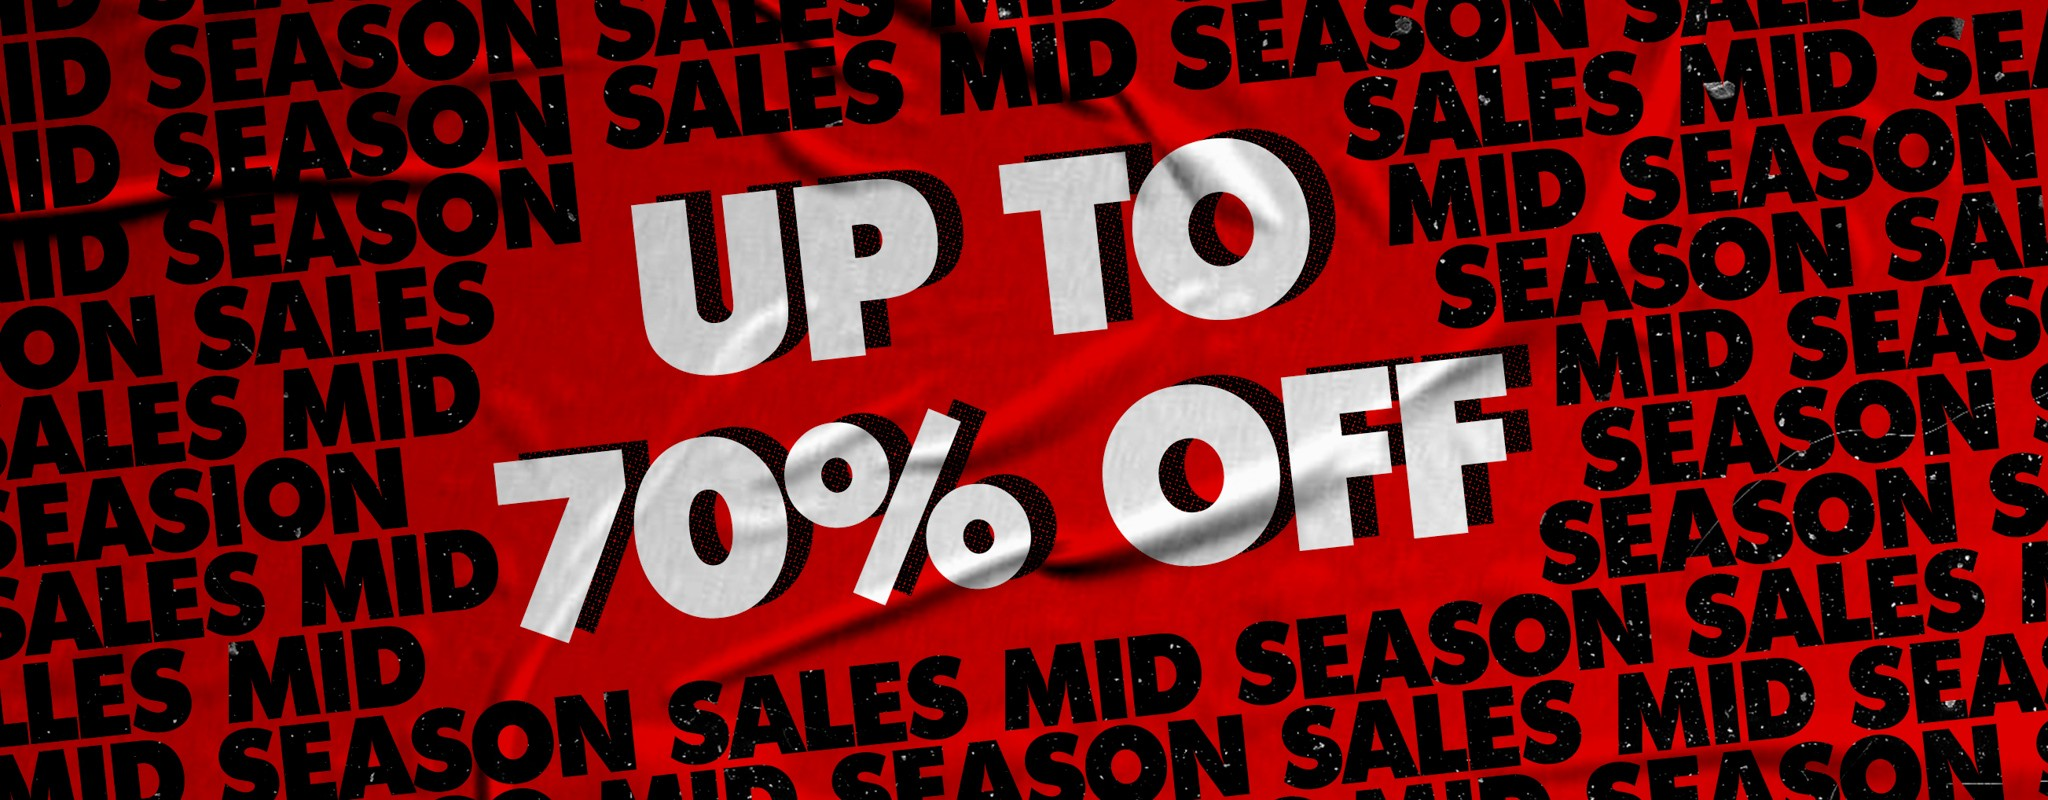 Mid Season Sales - up to 70% off!